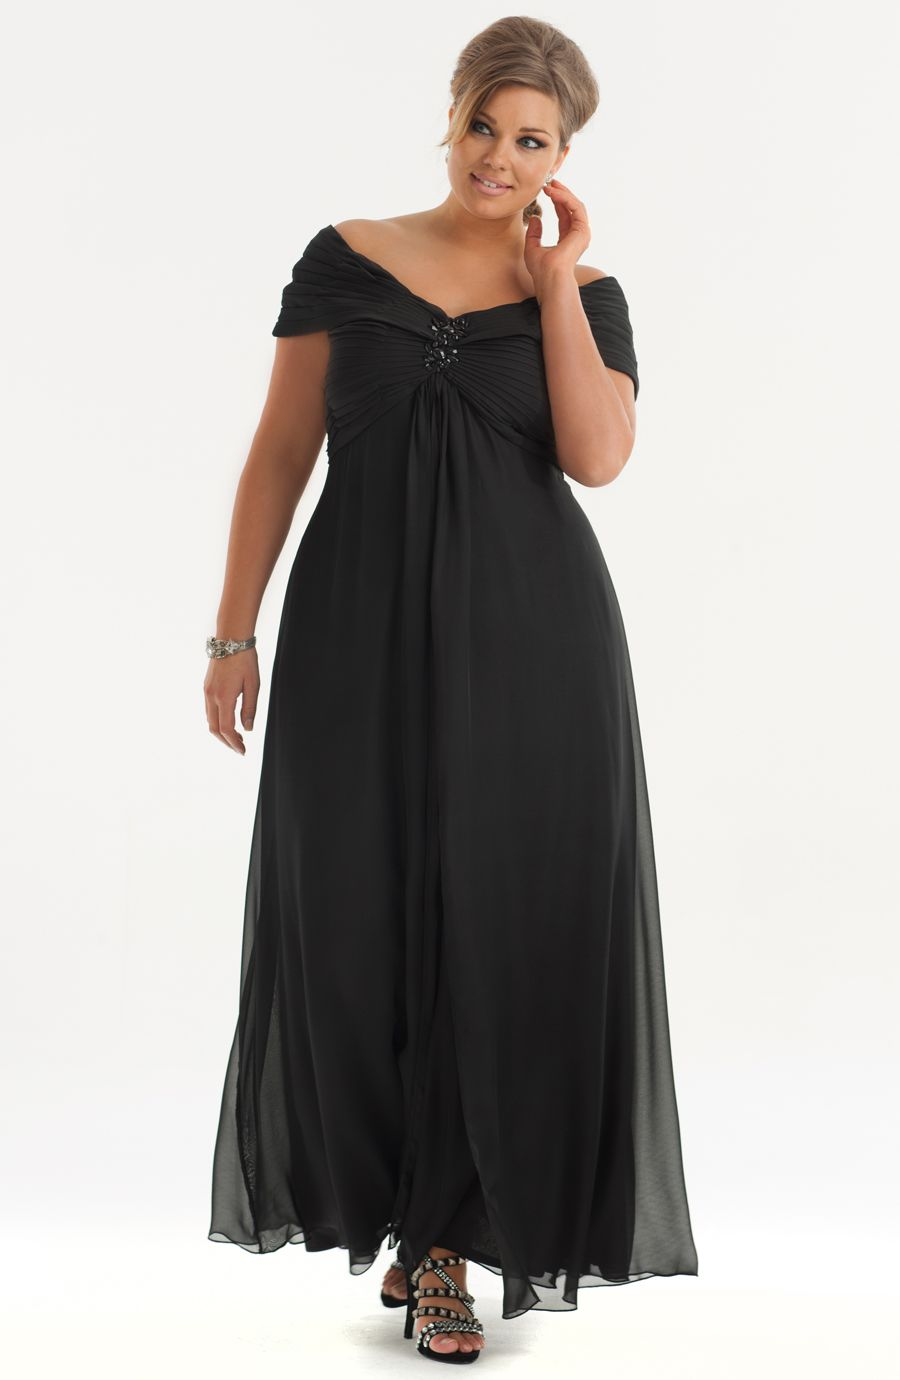 plus size evening dresses | ... see dream diva plus size evening ...